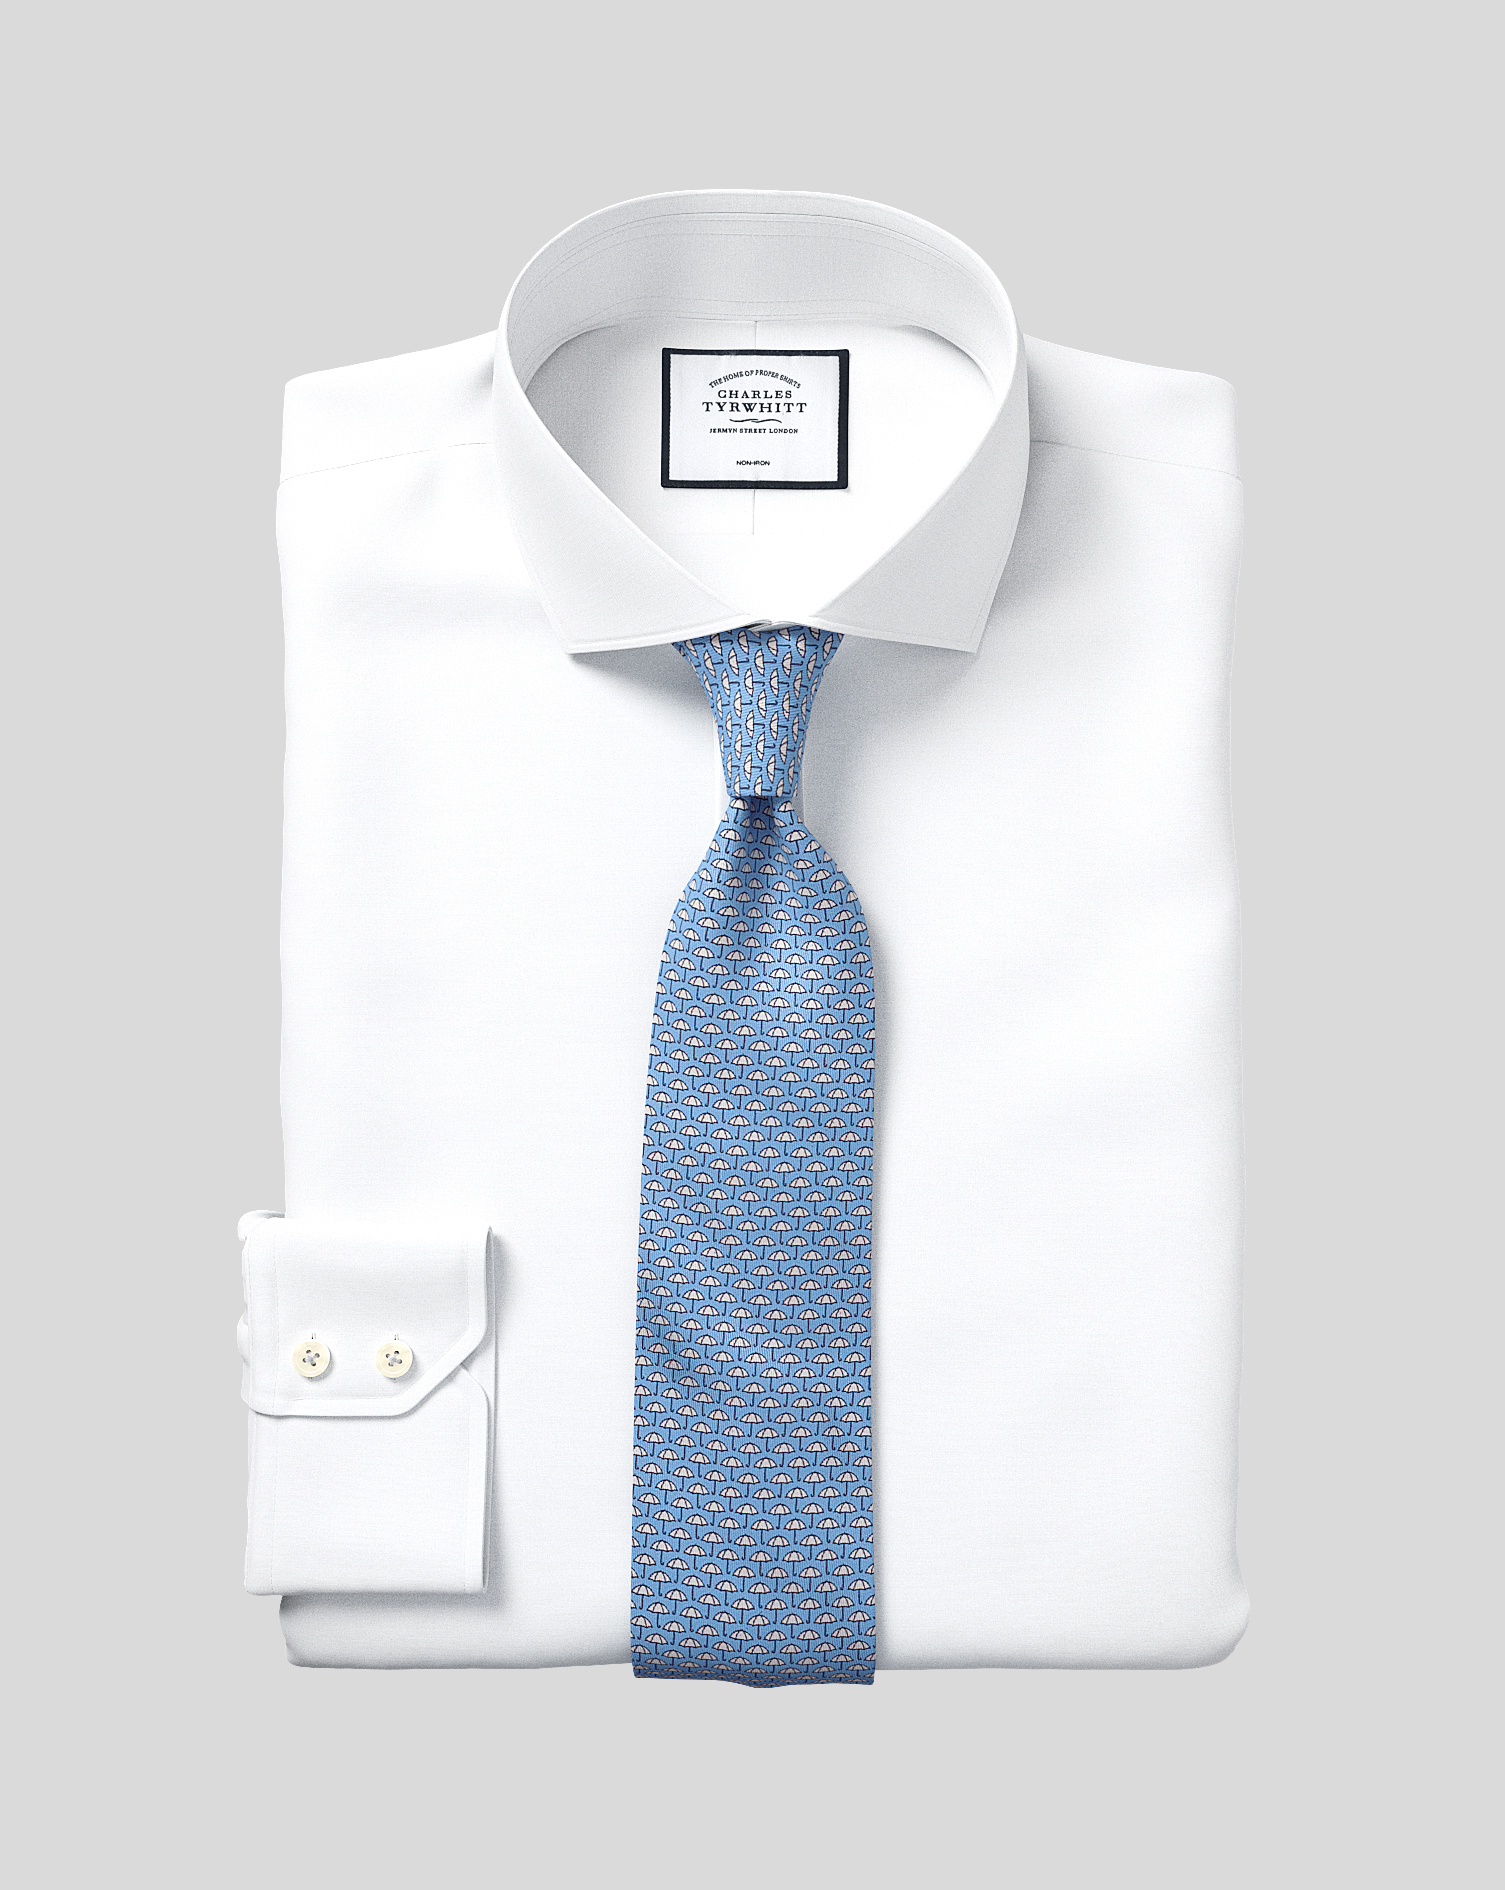 Slim Fit Non-Iron Cutaway White Tyrwhitt Cool Cotton Formal Shirt Single Cuff Size 15/33 by Charles